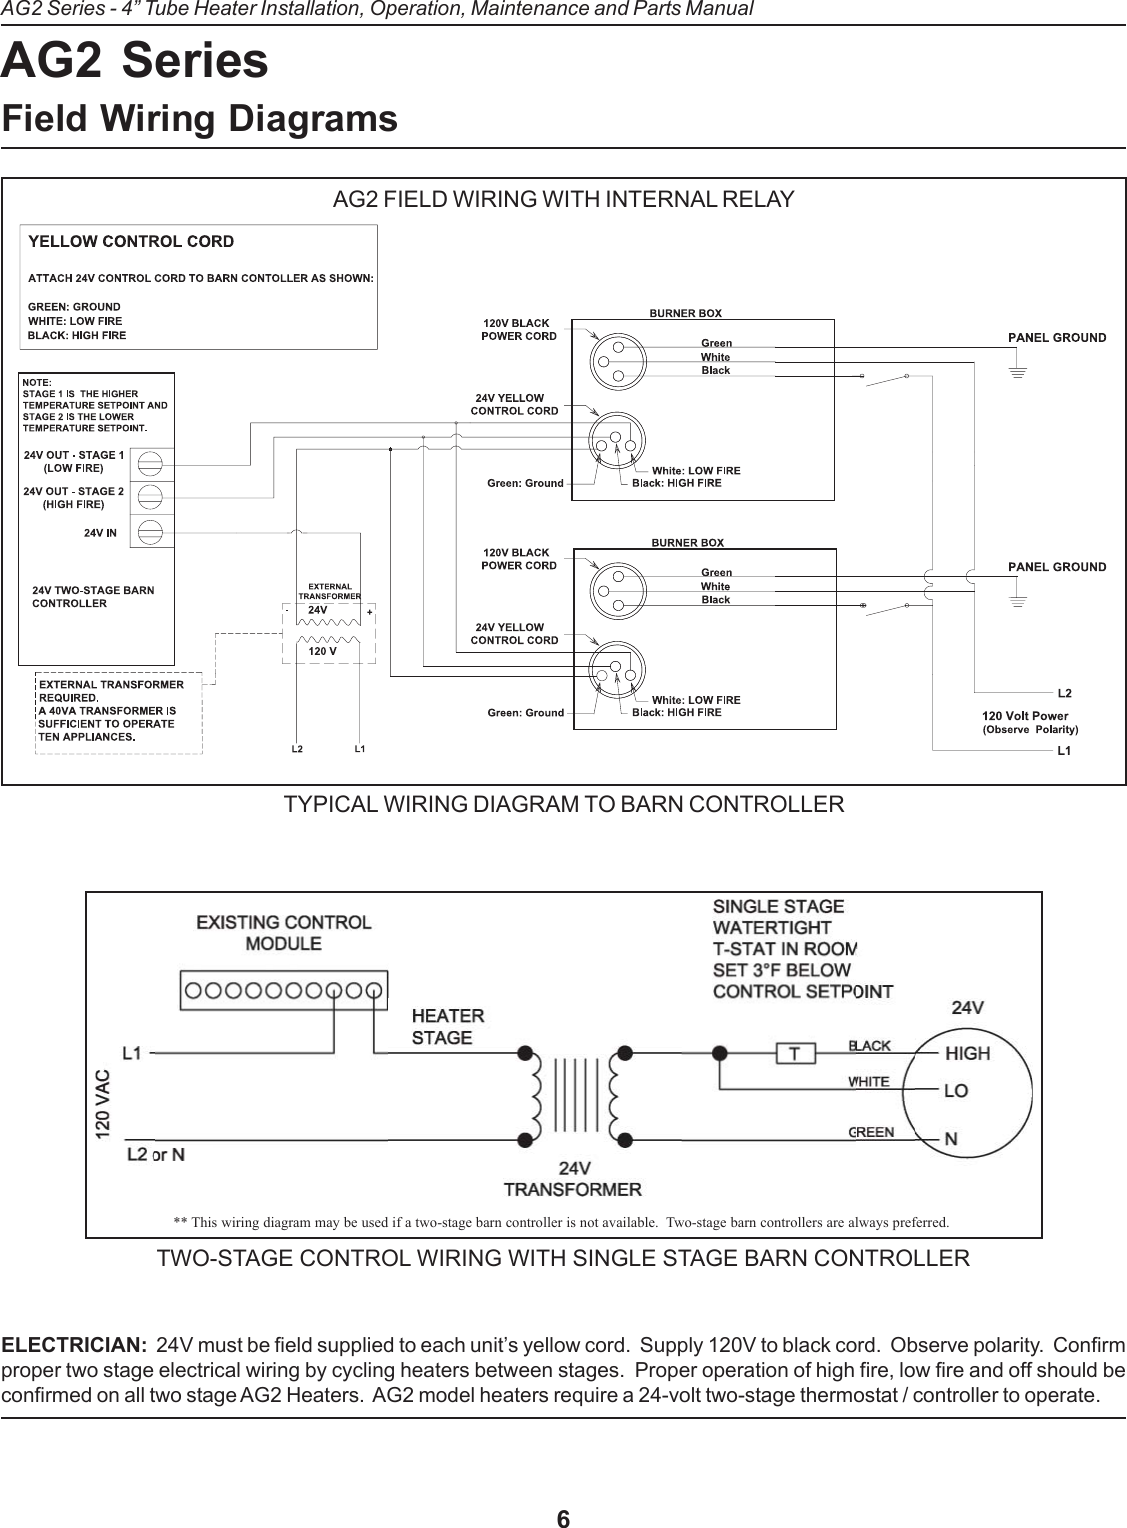 Detroit Electric Gas Heater V 5 05 Users Manual Ag 2 Insert 9 03 120v Wiring Diagrams Page 6 Of 12